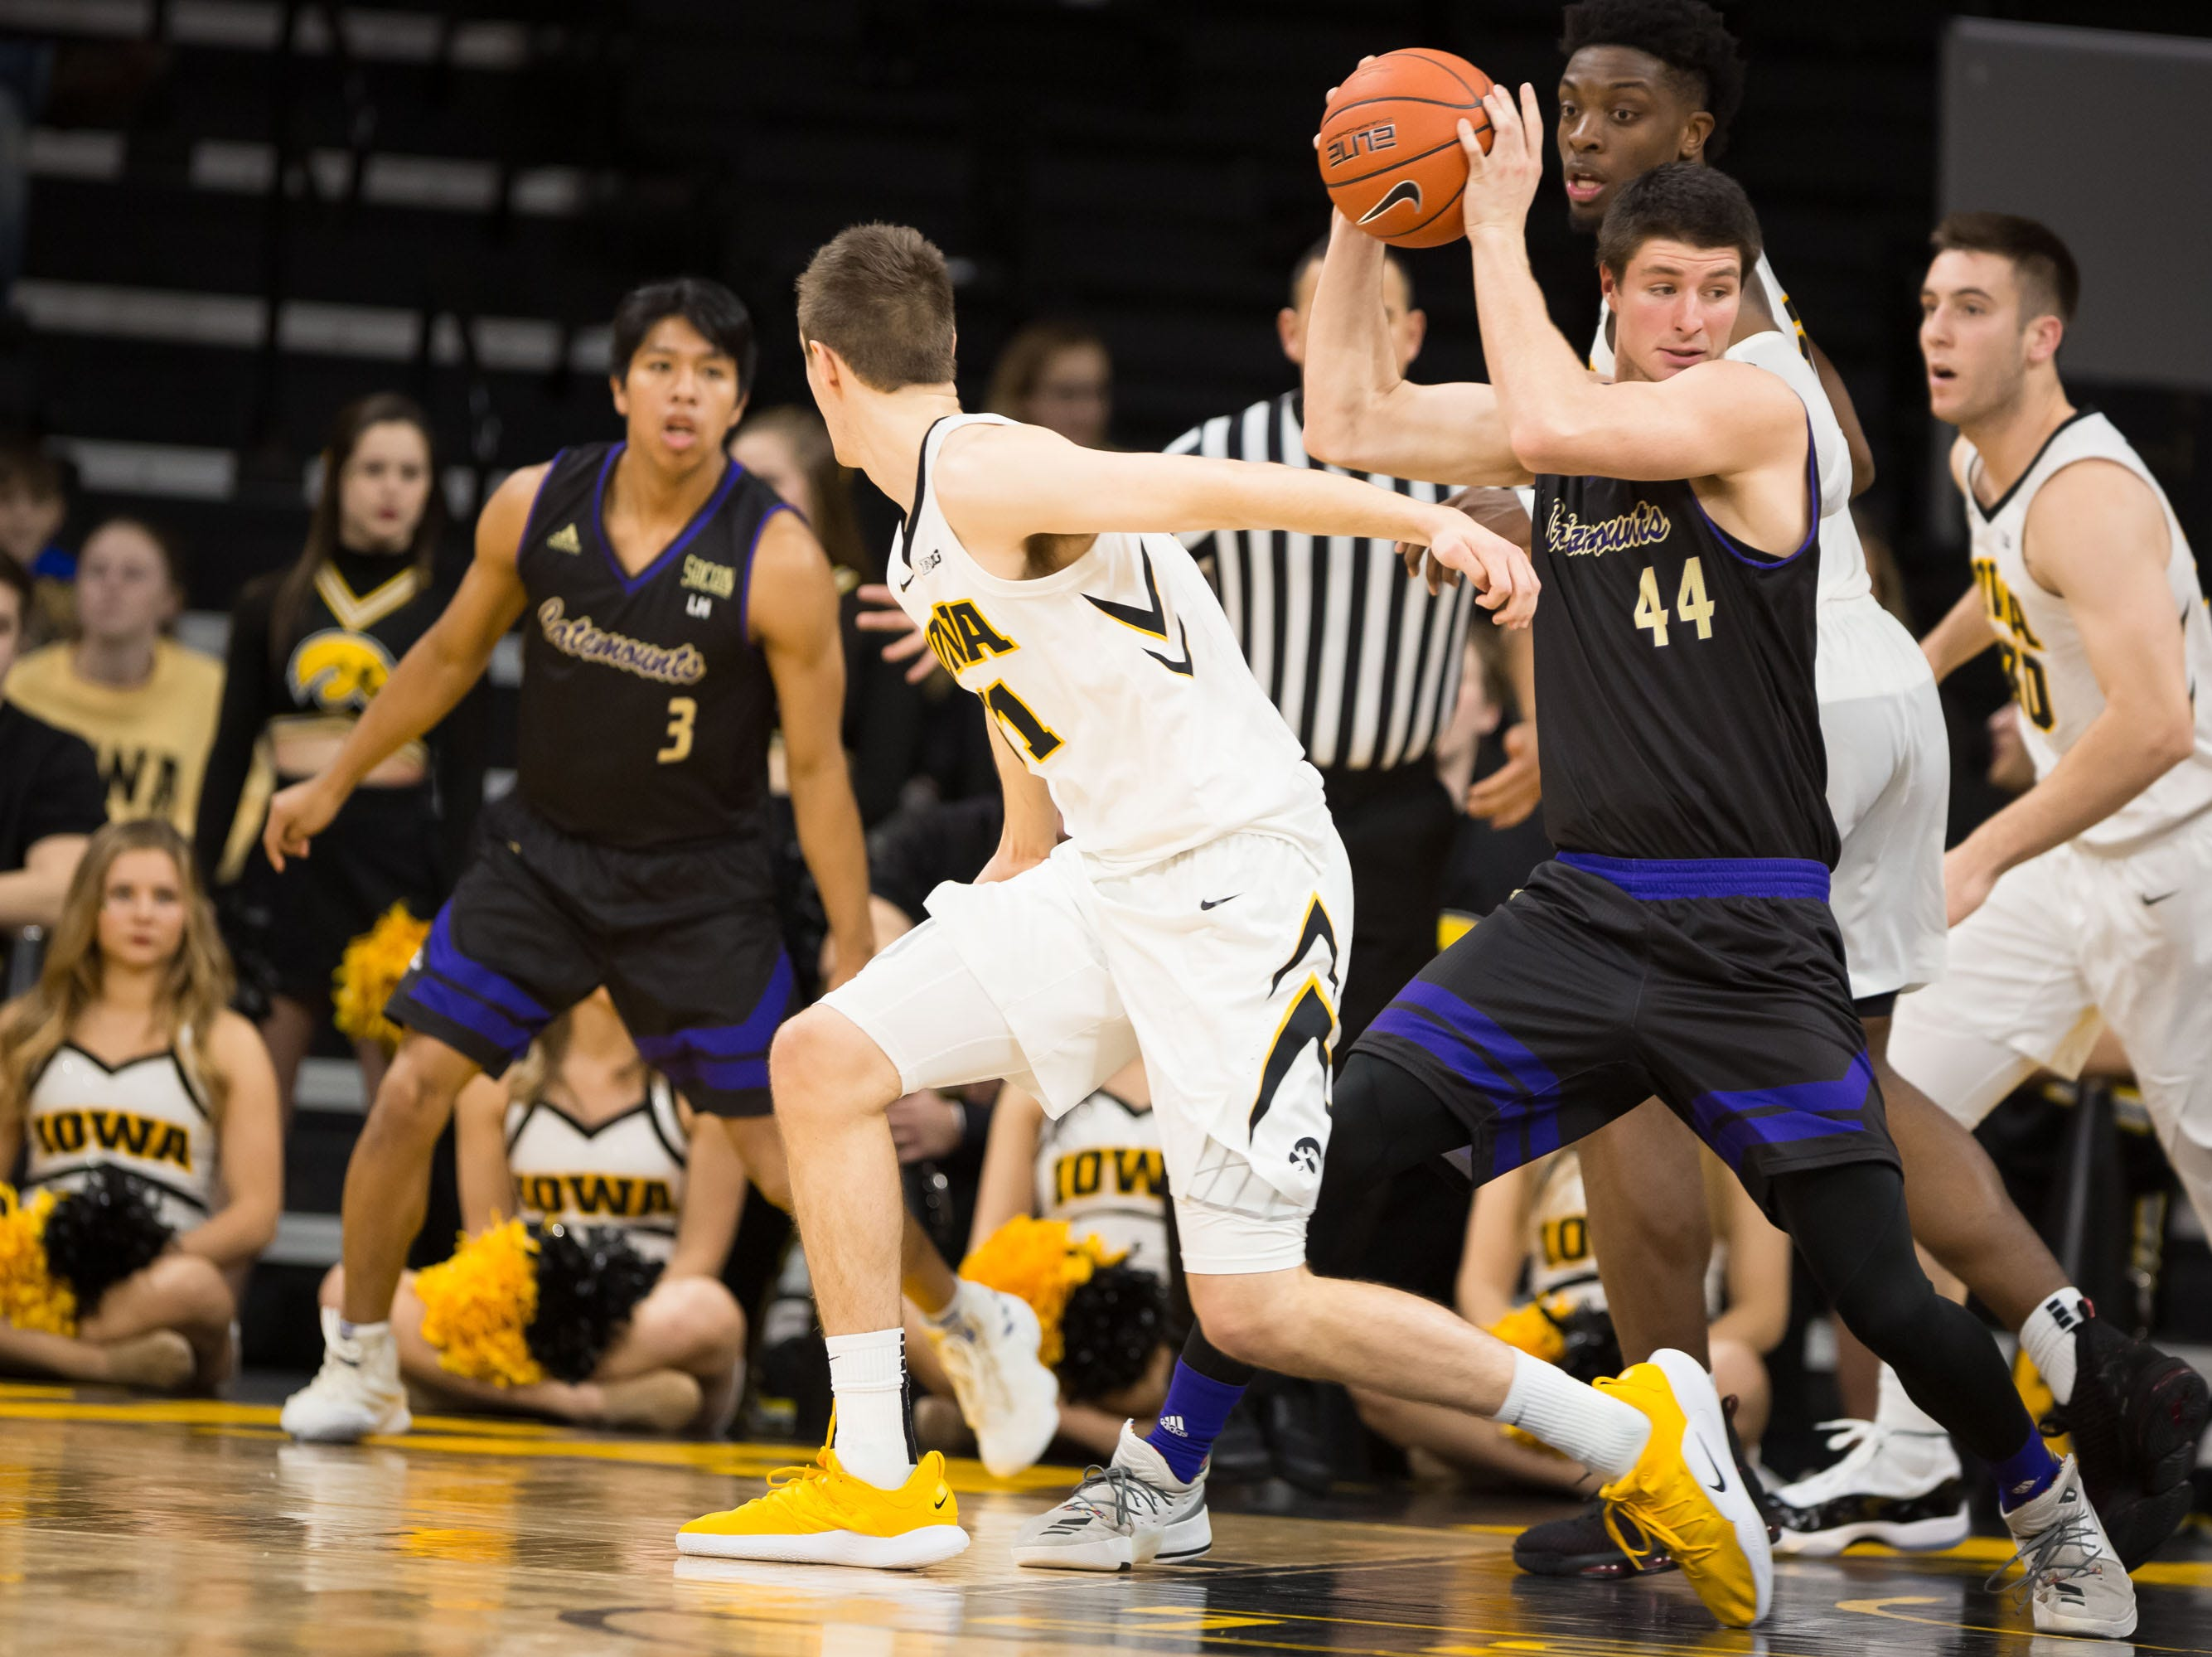 Western Carolina junior forward Adam Sledd (44) snatches the ball in the second half at Carver Hawkeye Arena in Iowa City on Tuesday, Dec. 18, 2018.